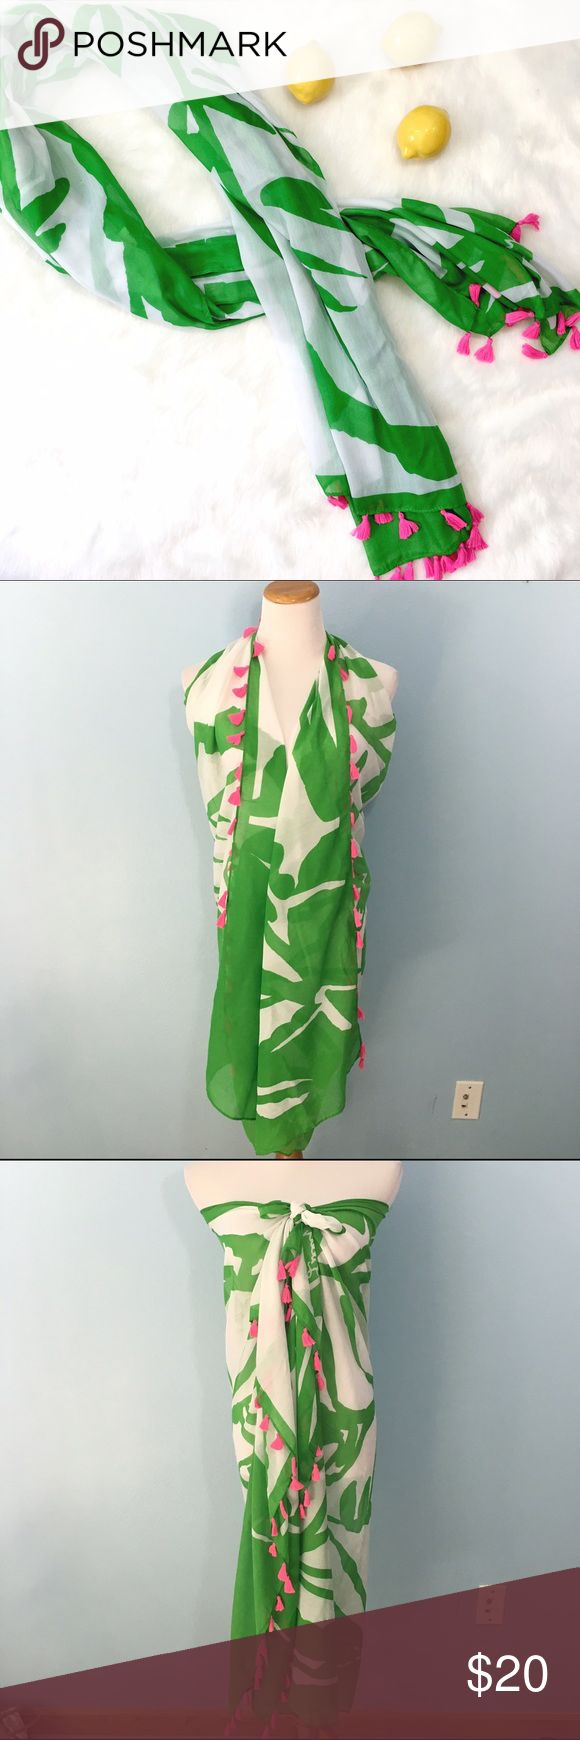 """Lily Pulitzer Large Oblong Scarf with Tassles So versatile! Very large, measures 68"""" x 43"""" with a gorgeous palm print across it. Sassy pink tassels bobbing along with your warm weather adventures! Large enough to be worn as a vest or wrap, perfect coverup! Lilly Pulitzer for Target Accessories Scarves & Wraps"""